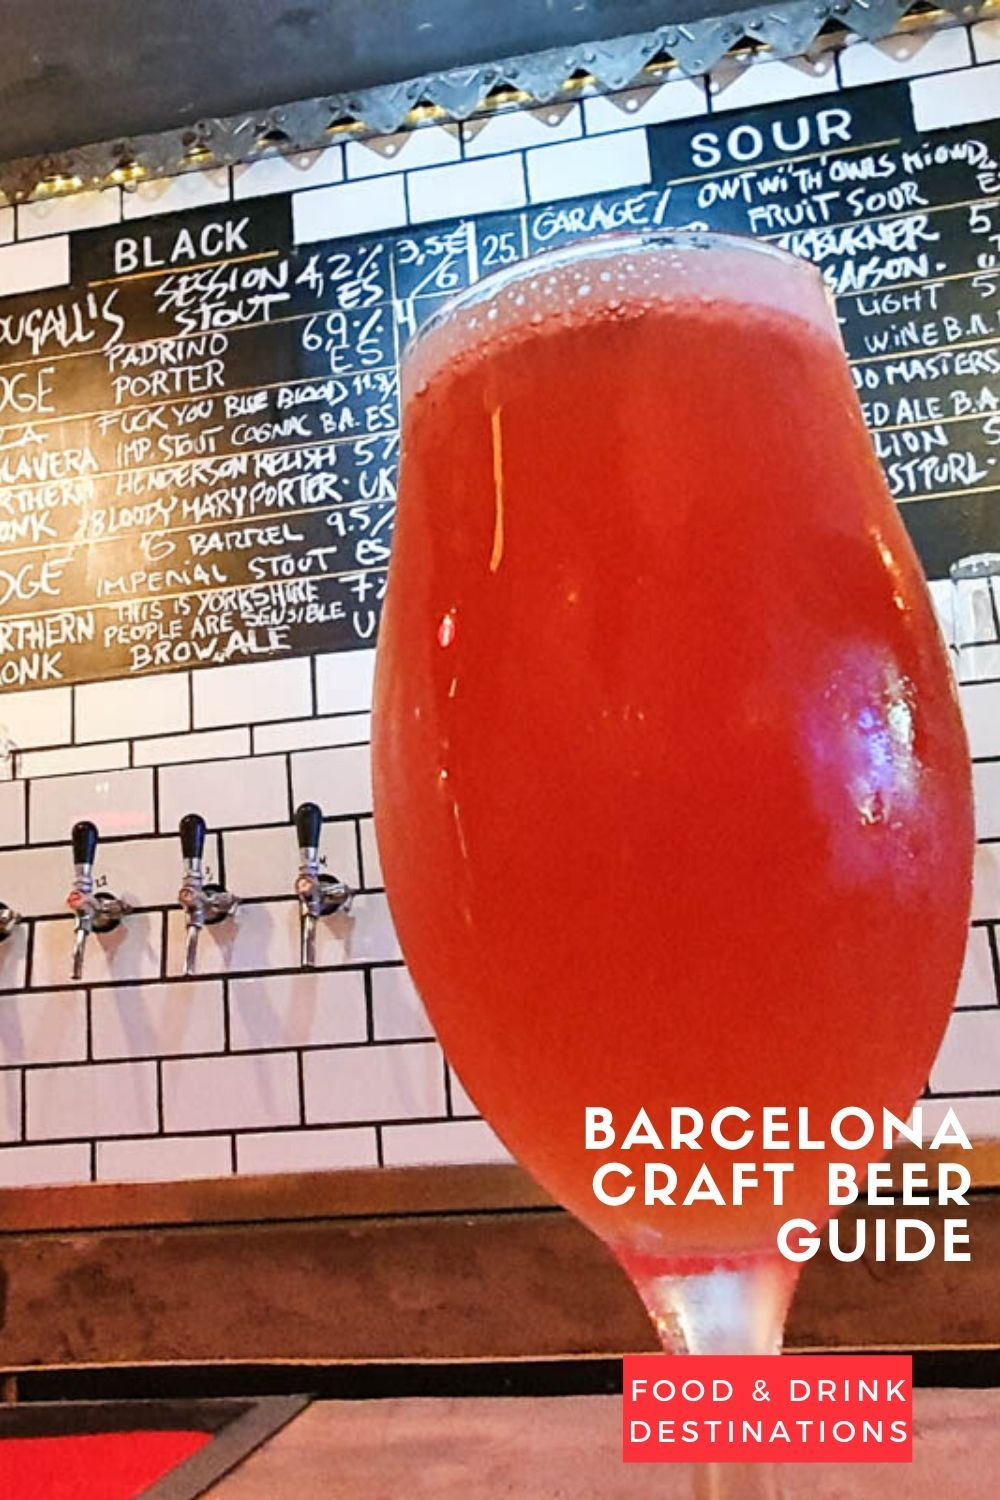 Barcelona Craft Beer Guide Drinking The Best Craft Beer In Barcelona In 2020 Beer Guide Best Craft Beers Craft Beer